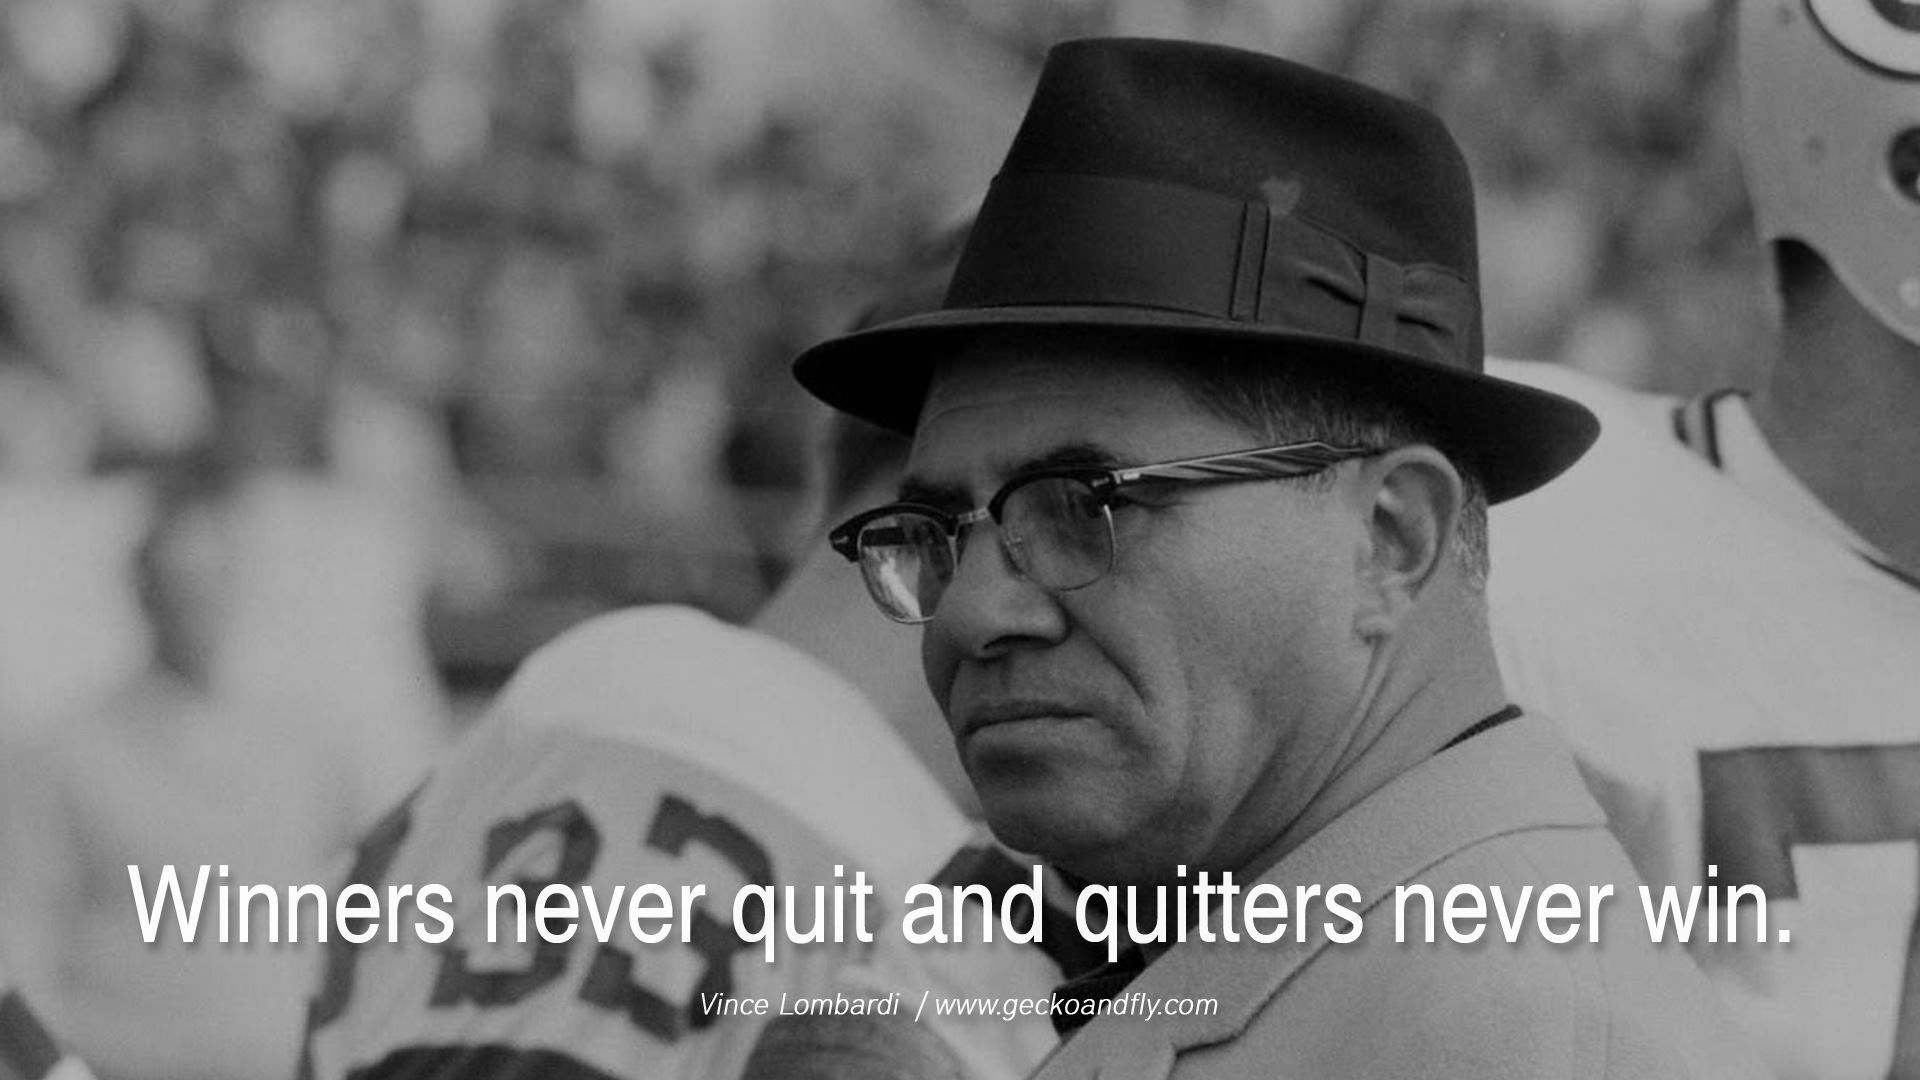 management lessons from vince lombardi Vince lombardi quotes american - coach june 11 , 1913 - september 3 , 1970 read full biography the price of success is hard work, dedication to the job at hand, and the determination that whether we win or lose, we have applied the best of ourselves to the task at hand.